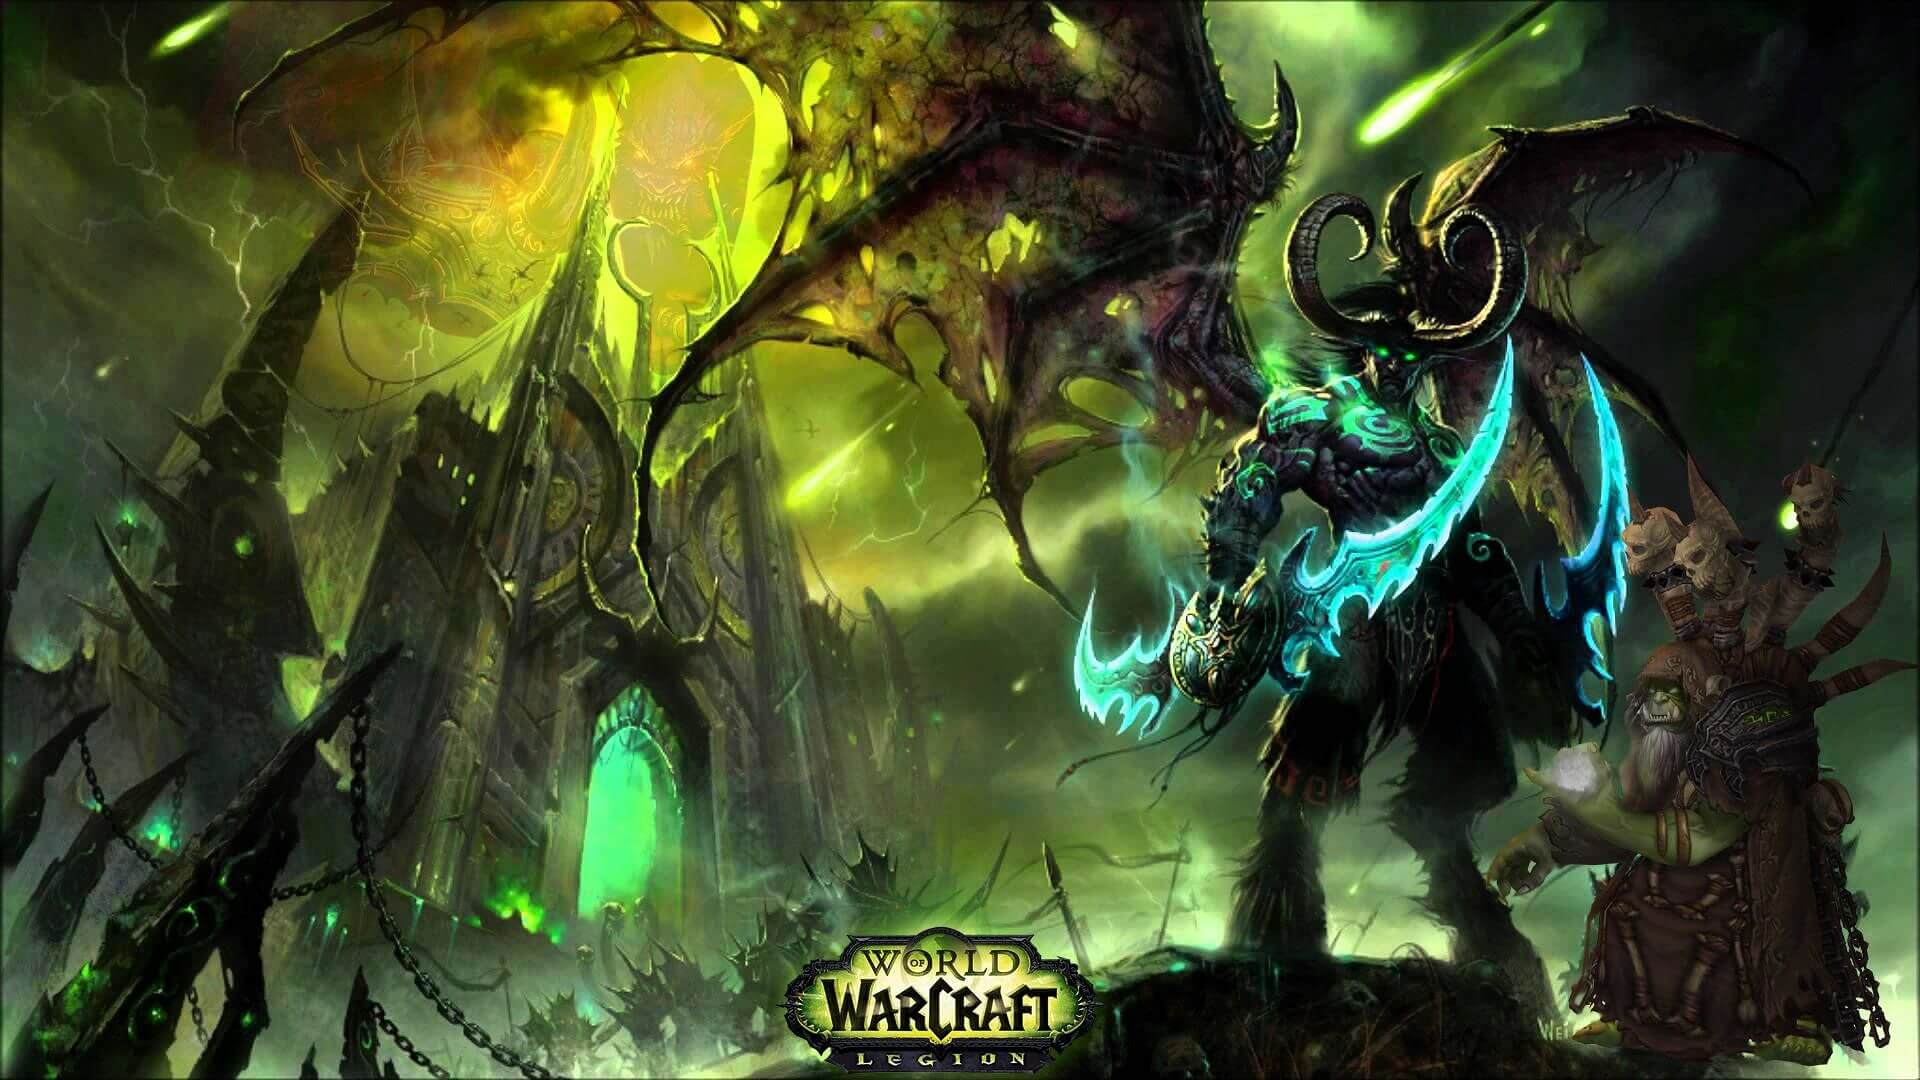 world-of-warcraft-free.